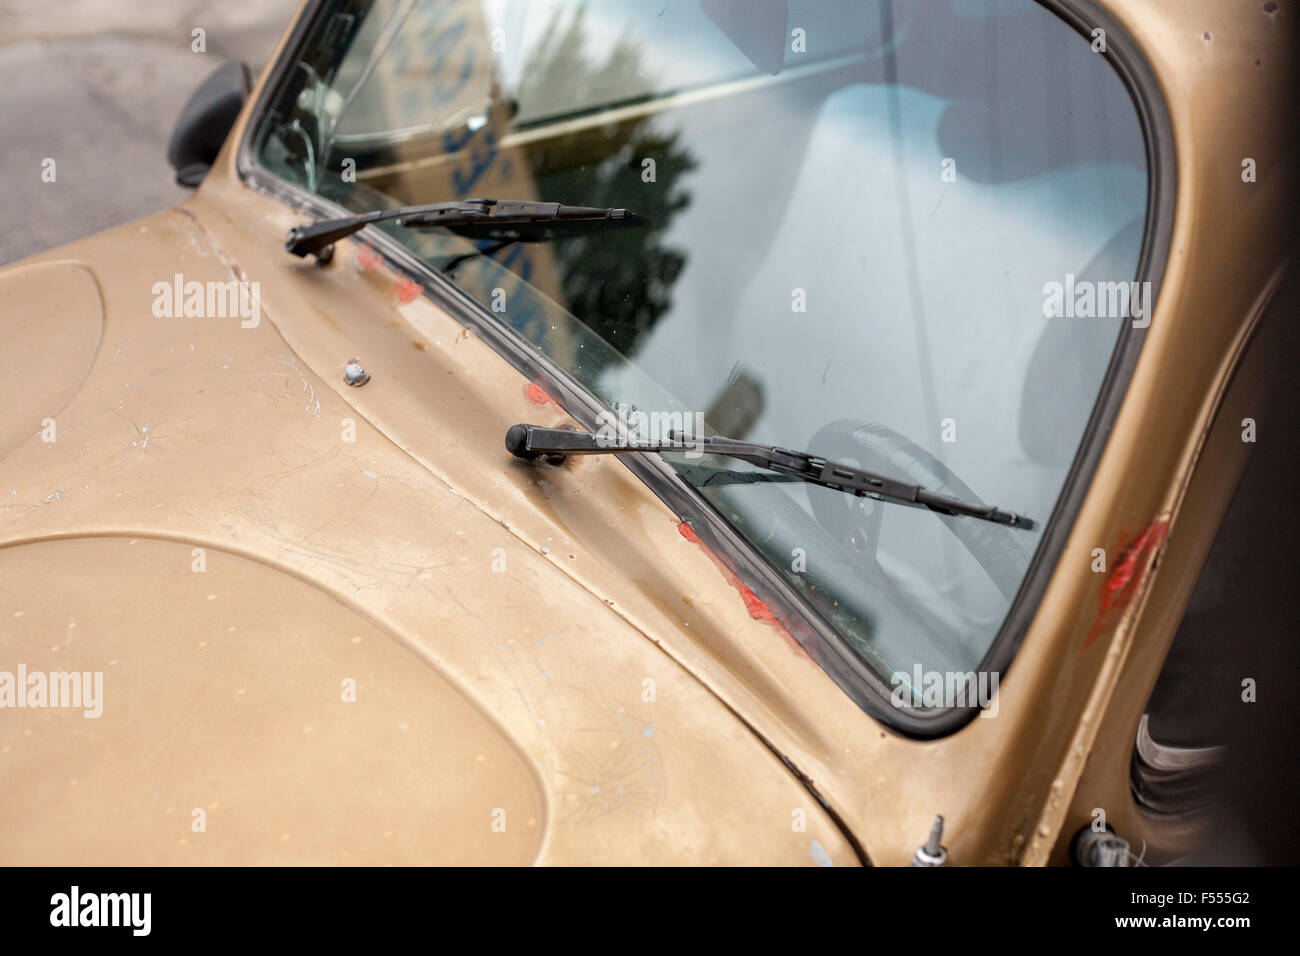 Golden VW beetle car. A rusty old Volkswagen beetle or bug has a coat of dull golden paint.  It is showing cracks. - Stock Image